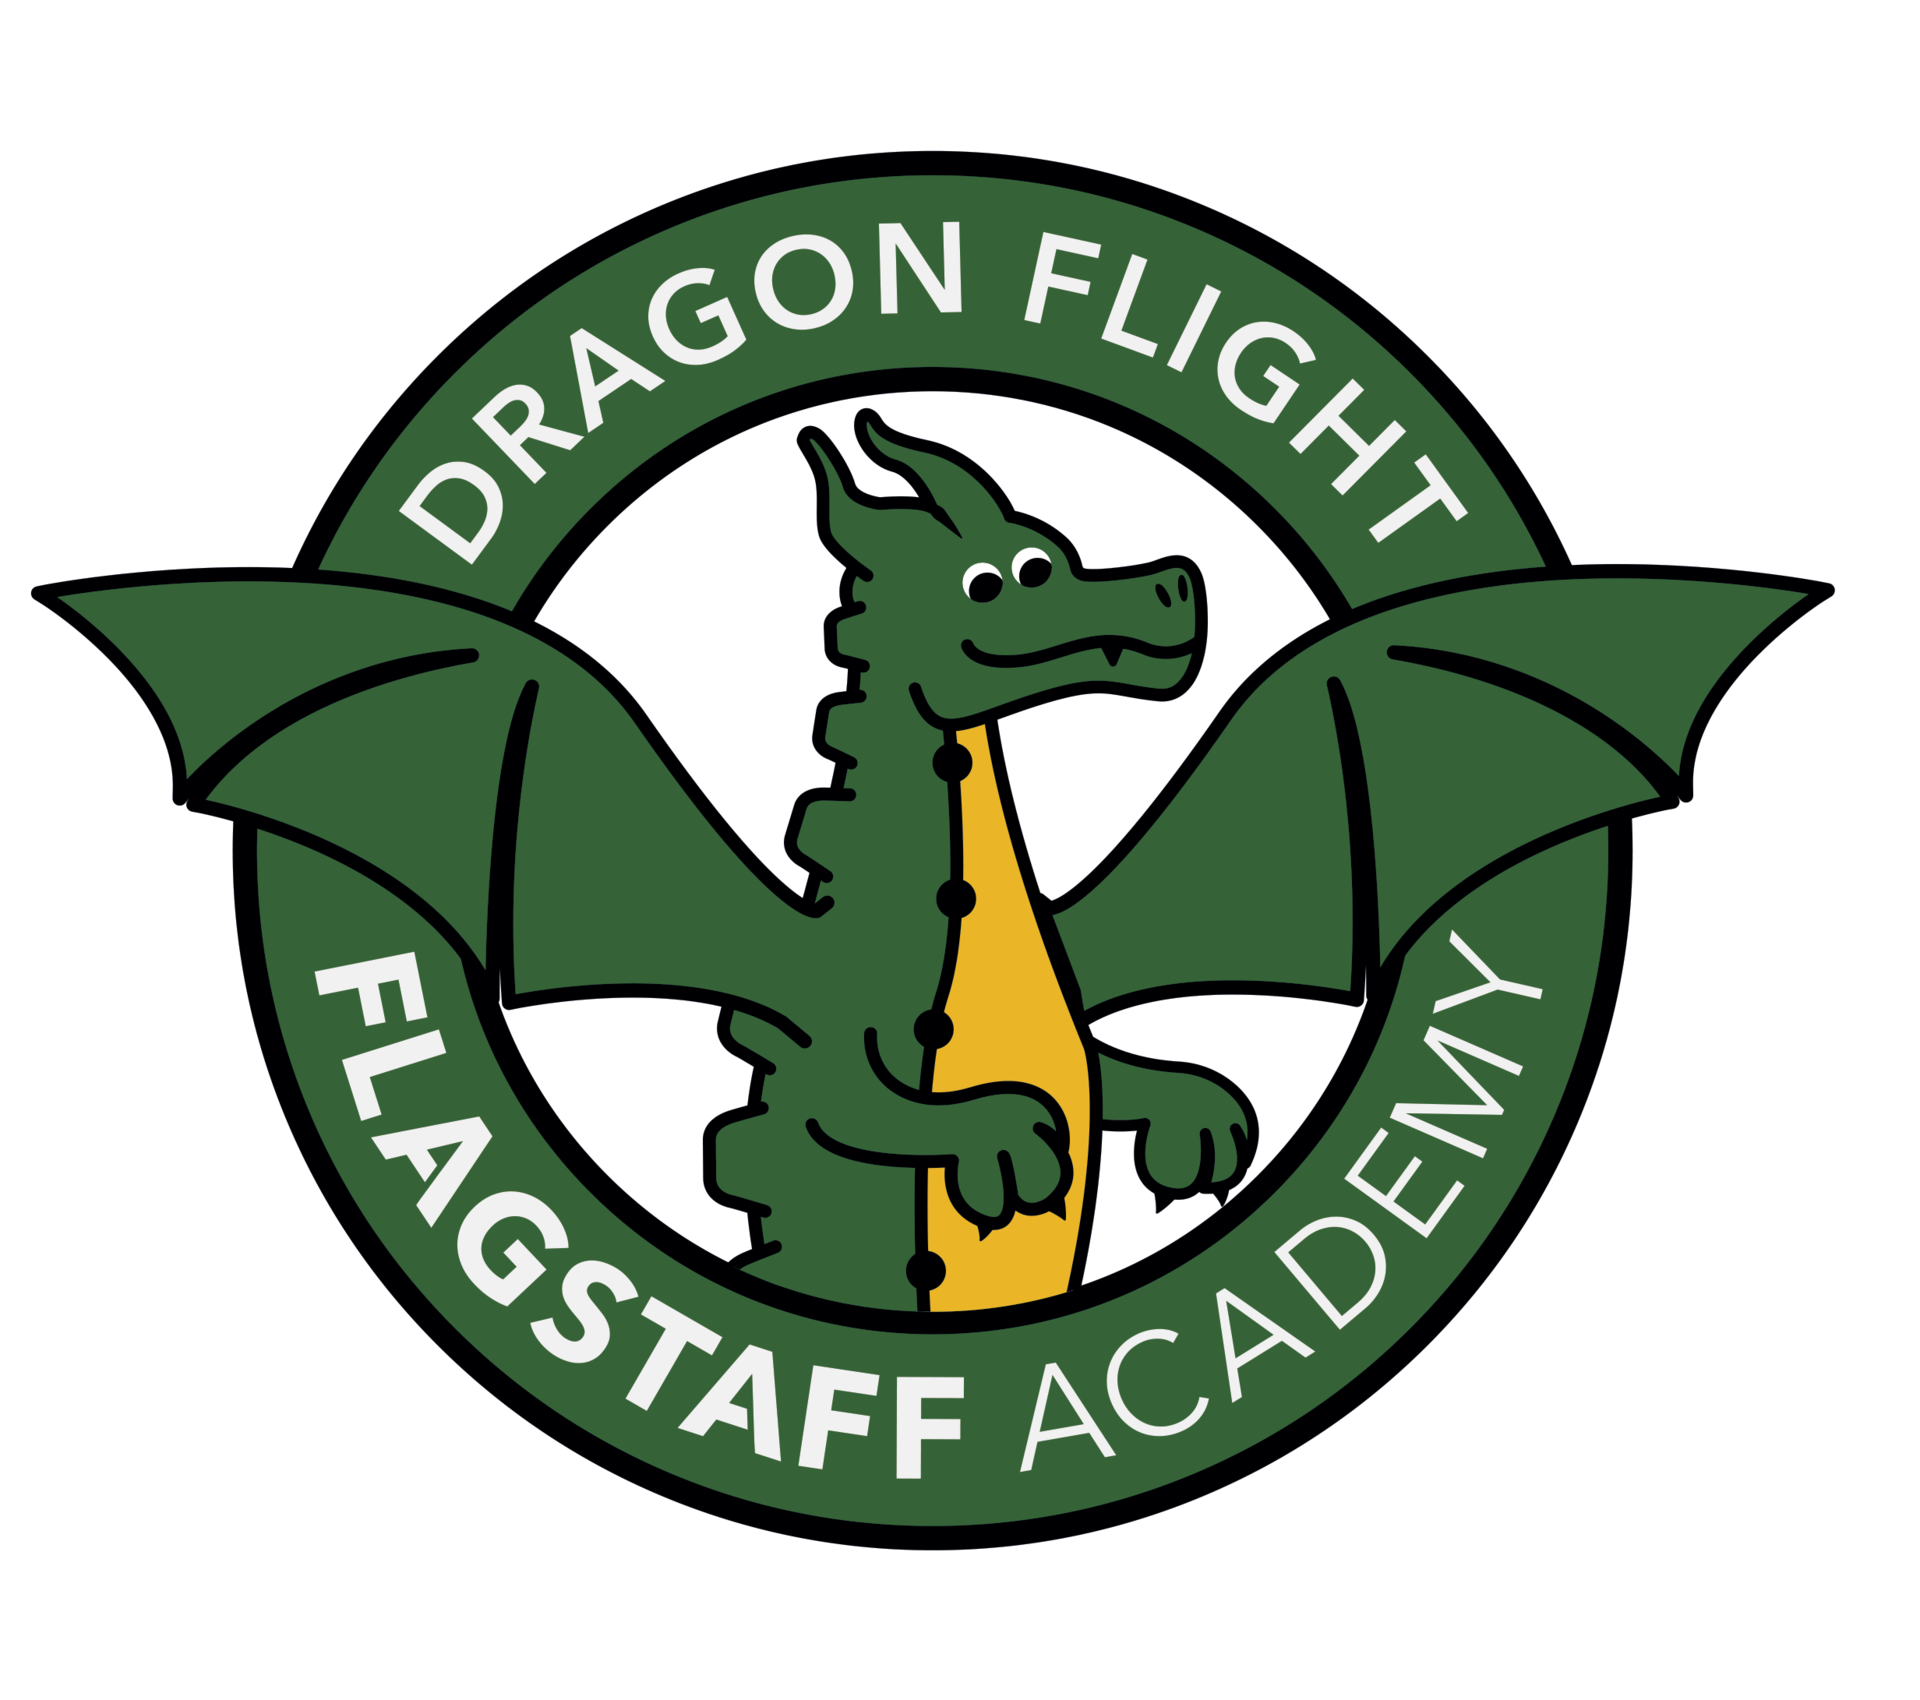 Dragon Flight After School Care